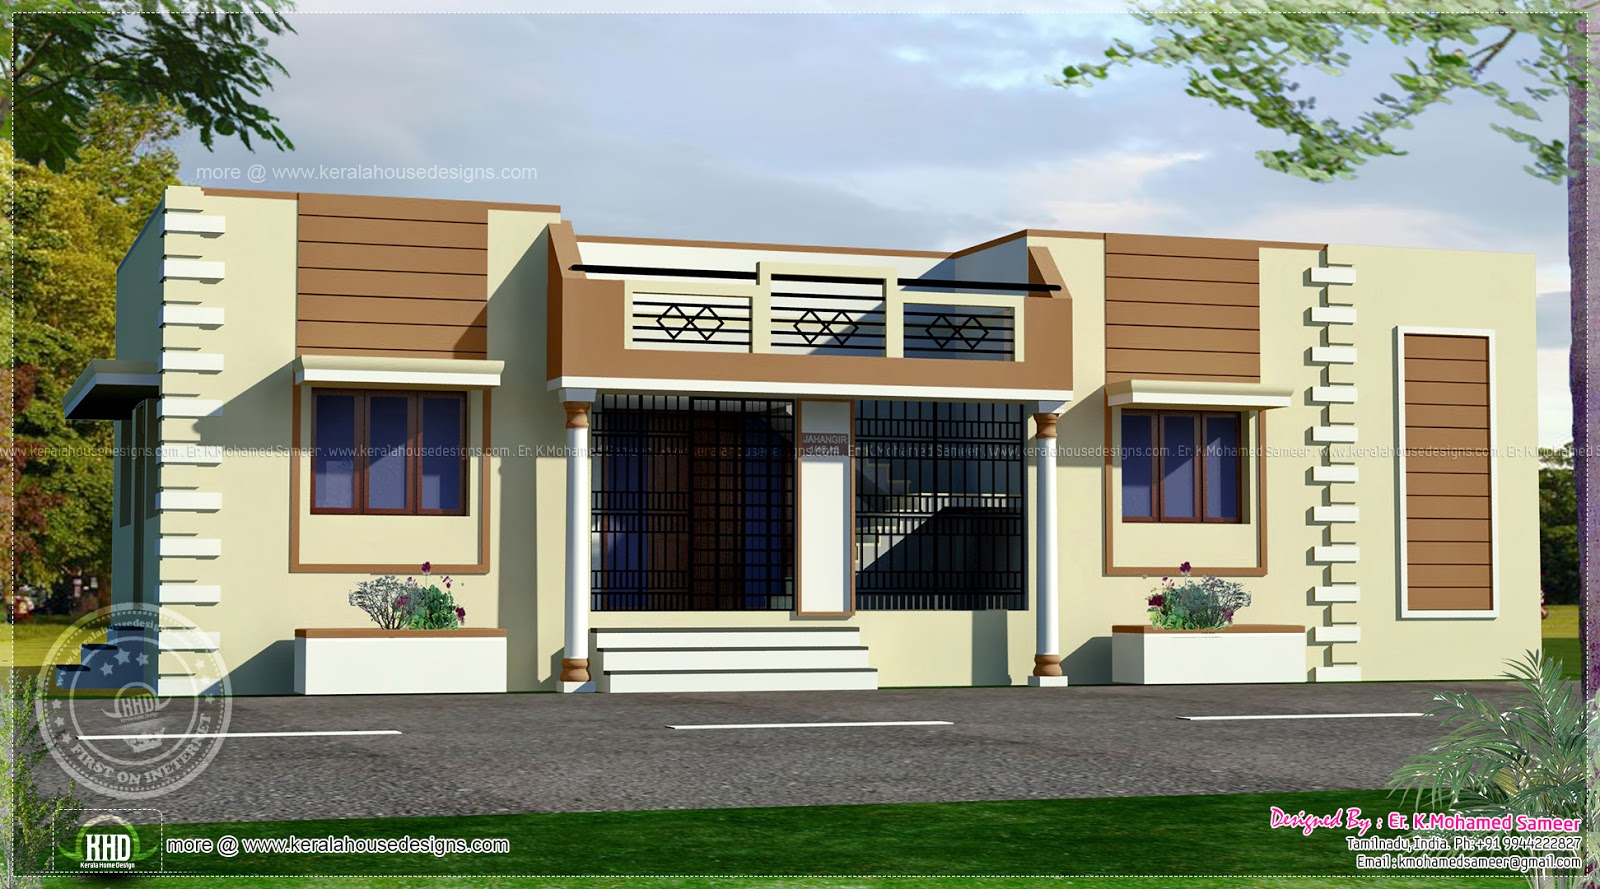 Tamilnadu style single floor home - Kerala home design and floor plans